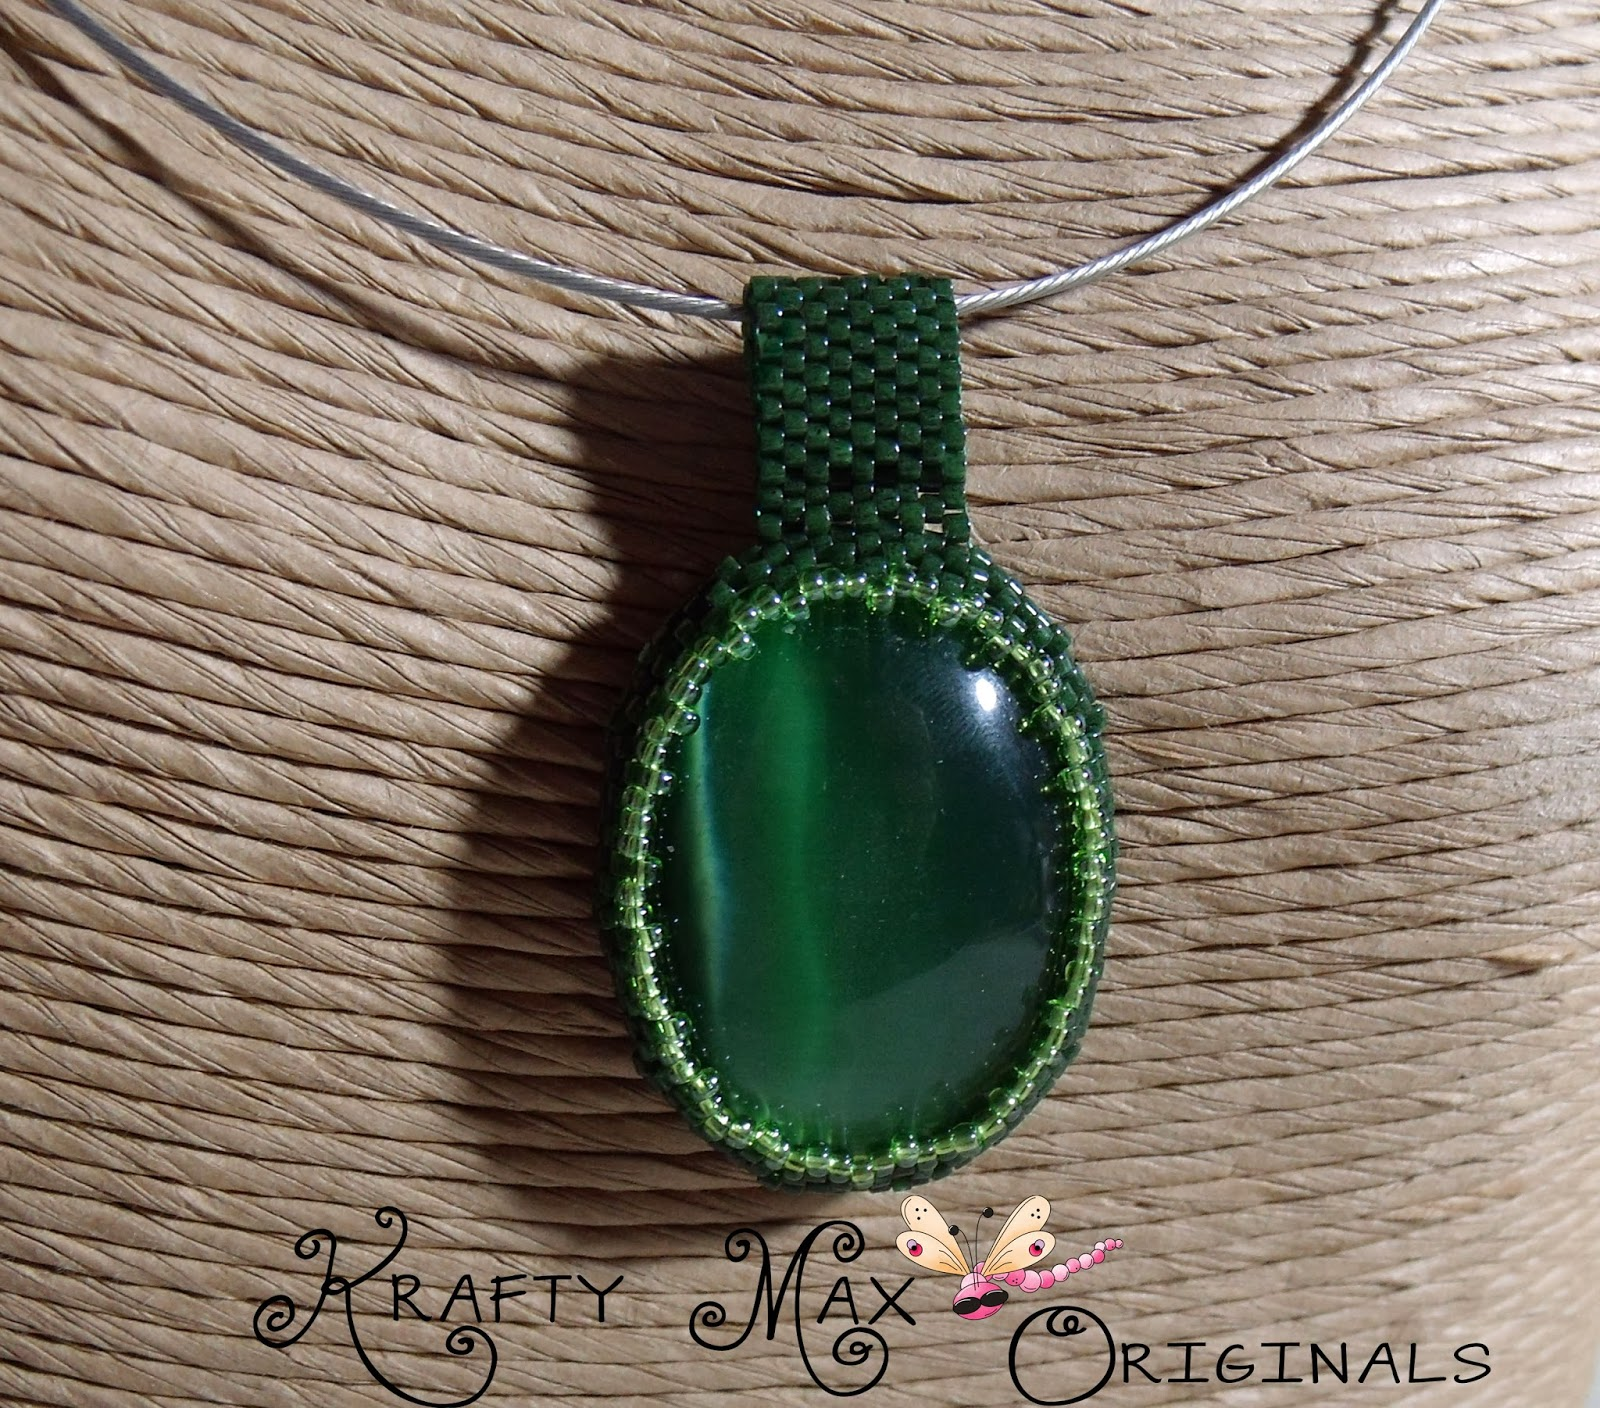 http://www.lajuliet.com/index.php/2013-01-04-15-21-51/ad/beadwork,46/exclusive-green-catseye-beadwoven-necklace-a-krafty-max-original-design,276